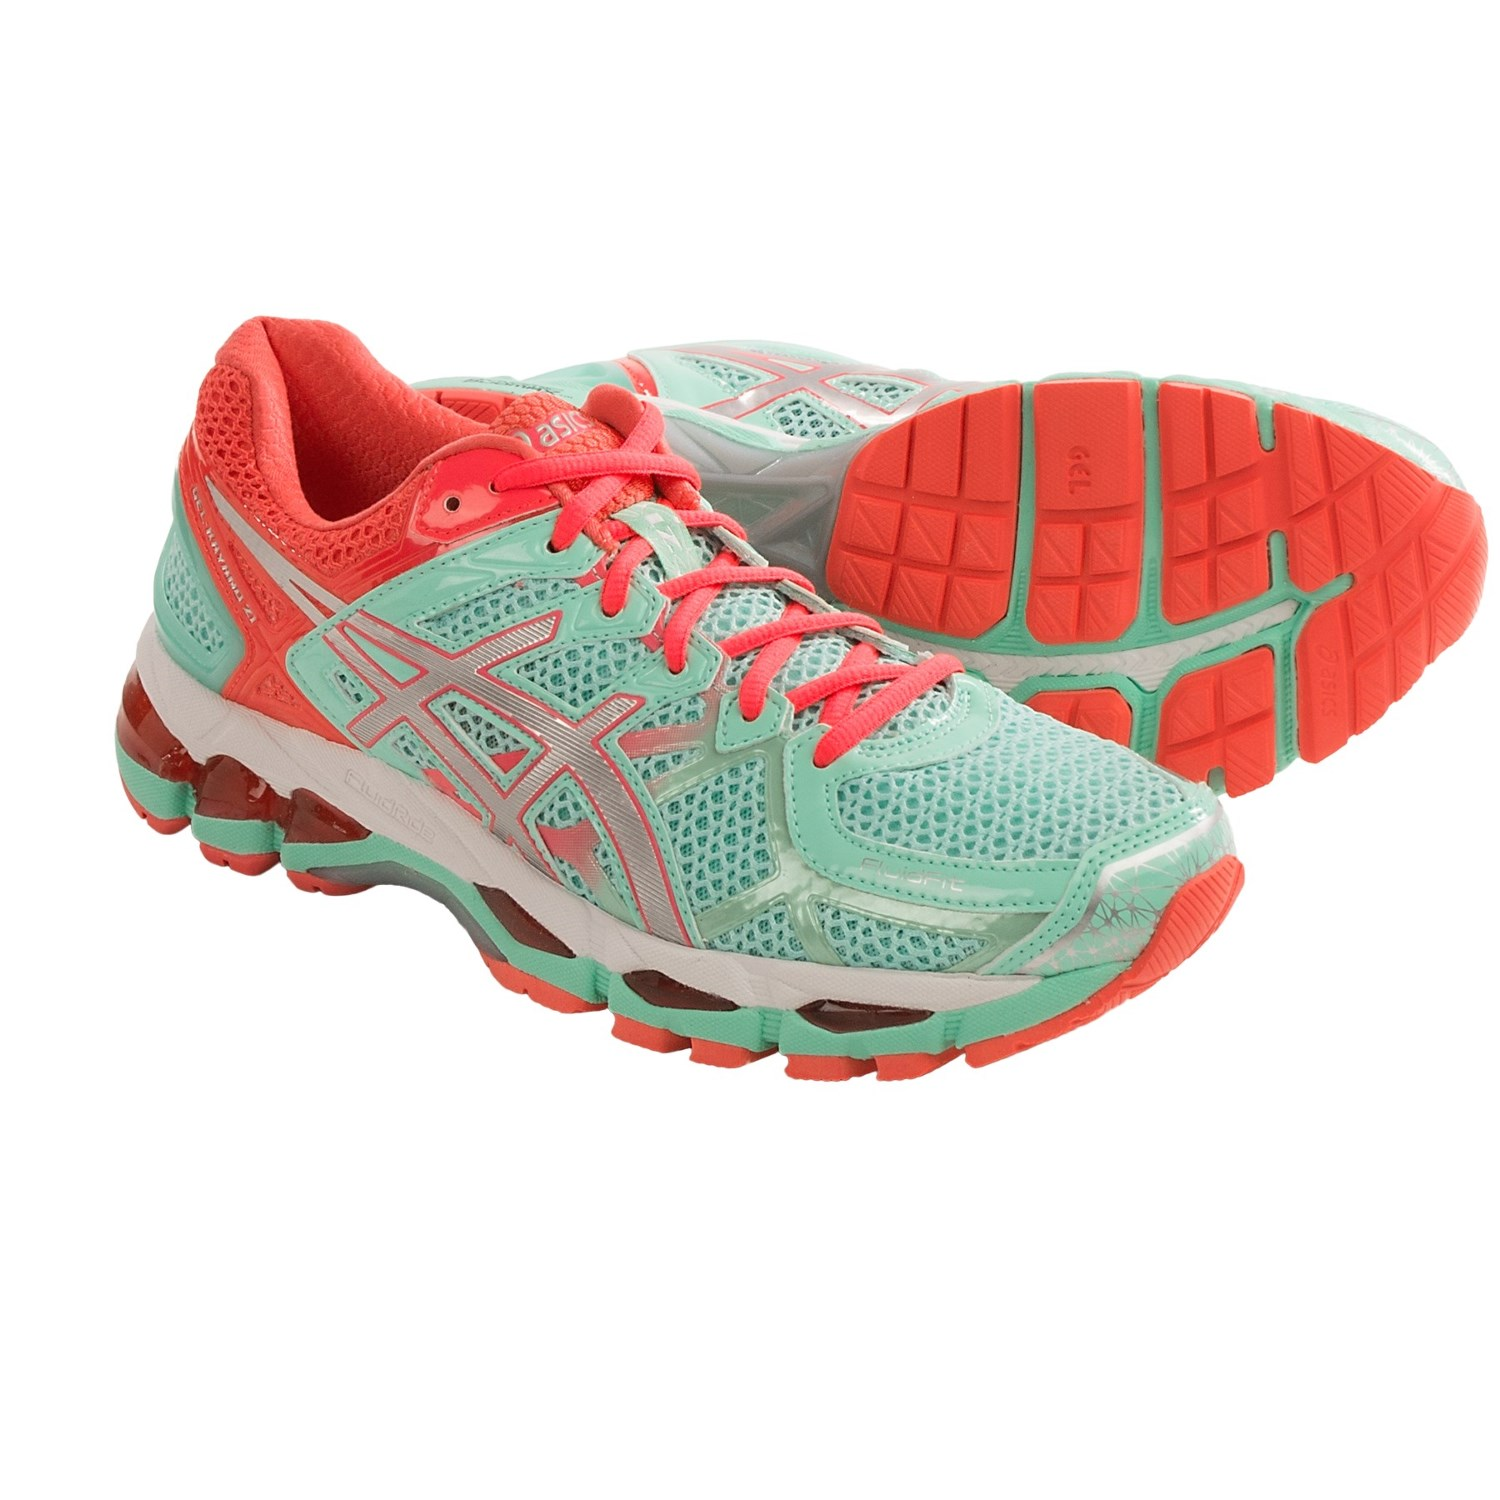 asics gel kayano 21 running shoes for women in beach glass silver diva pink. Black Bedroom Furniture Sets. Home Design Ideas